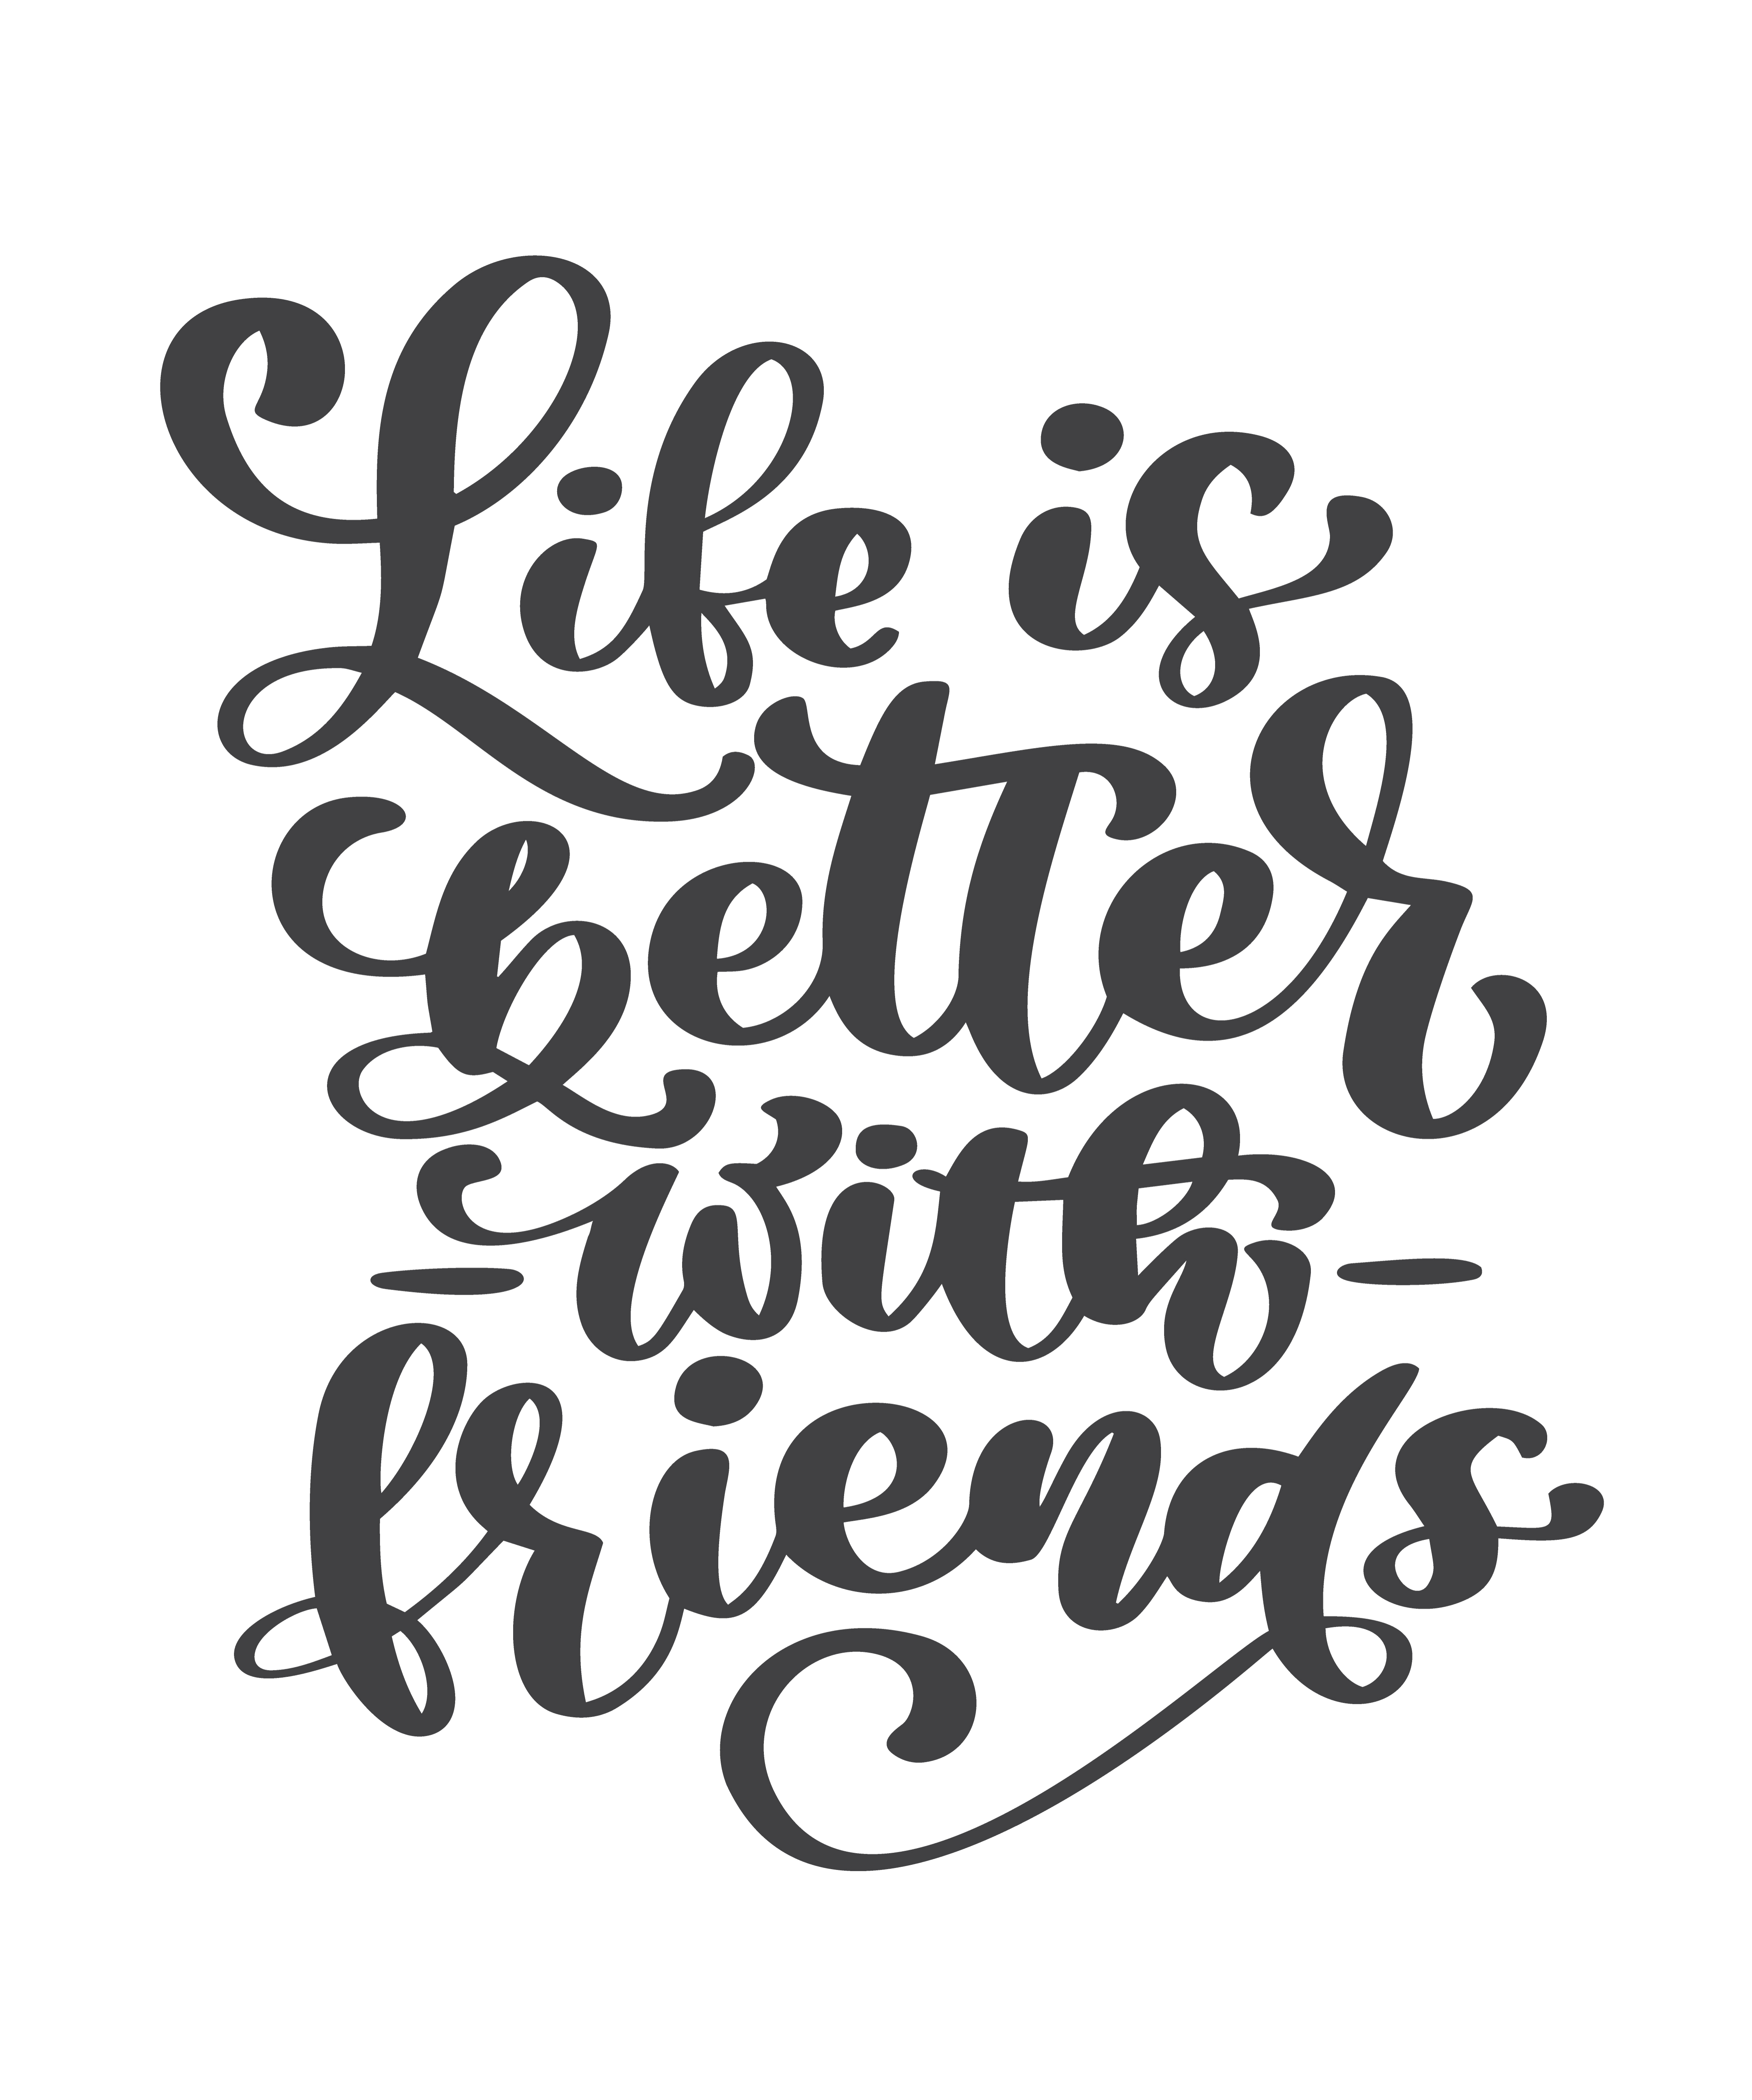 Life is better with friends handwritten lettering text ...